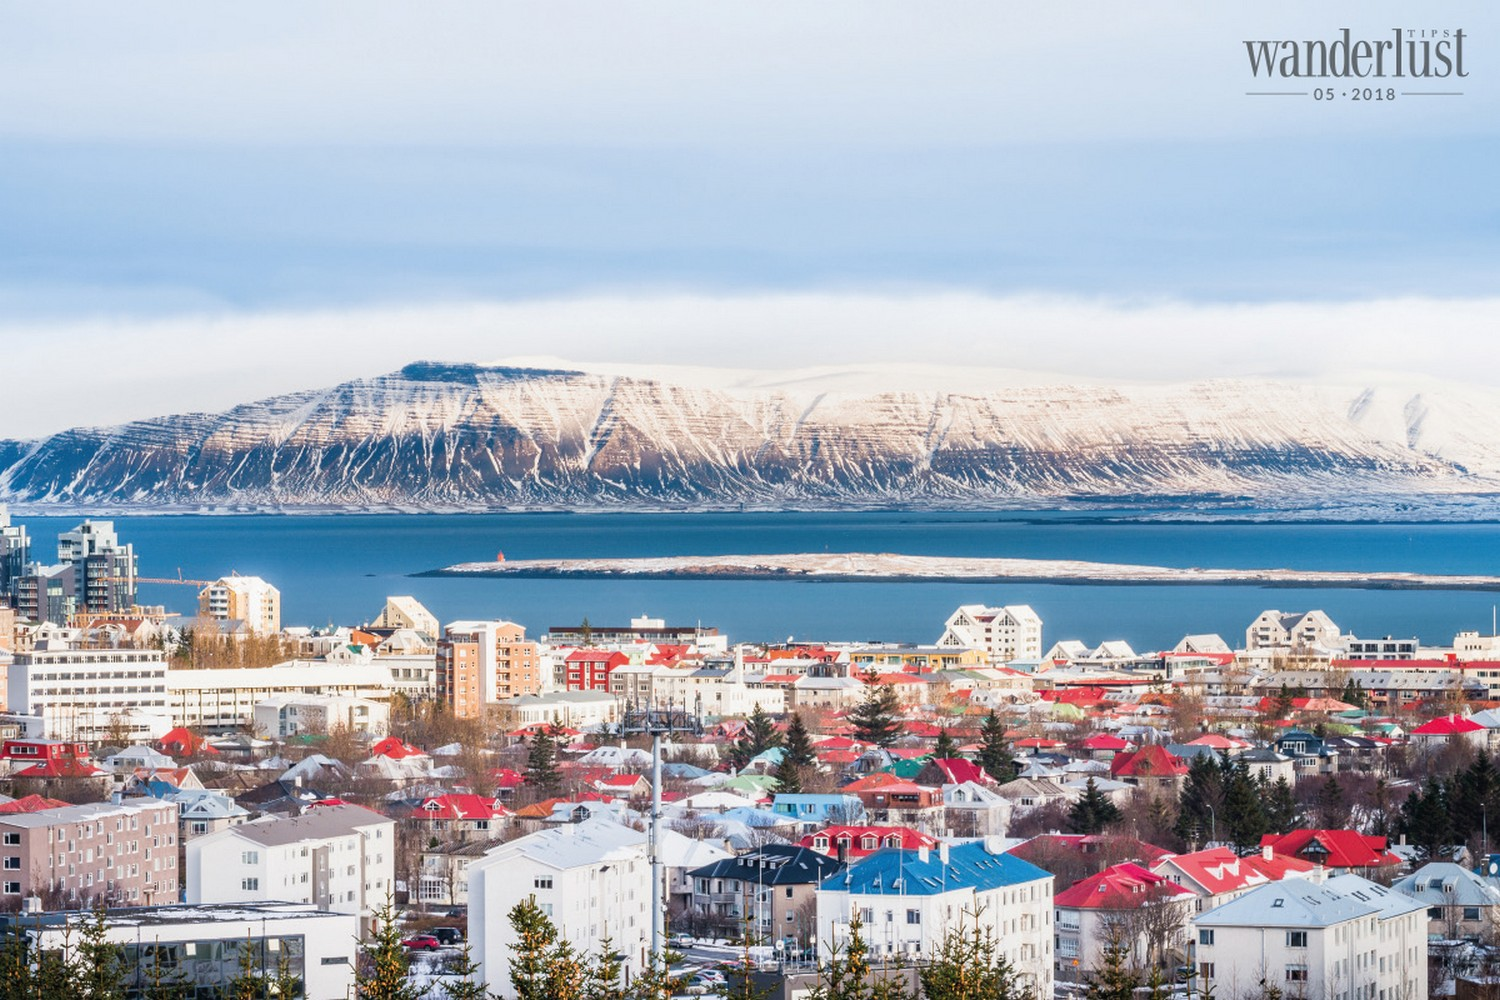 Wanderlust Tips Magazine | The world's cheapest & most expensive cities in 2018